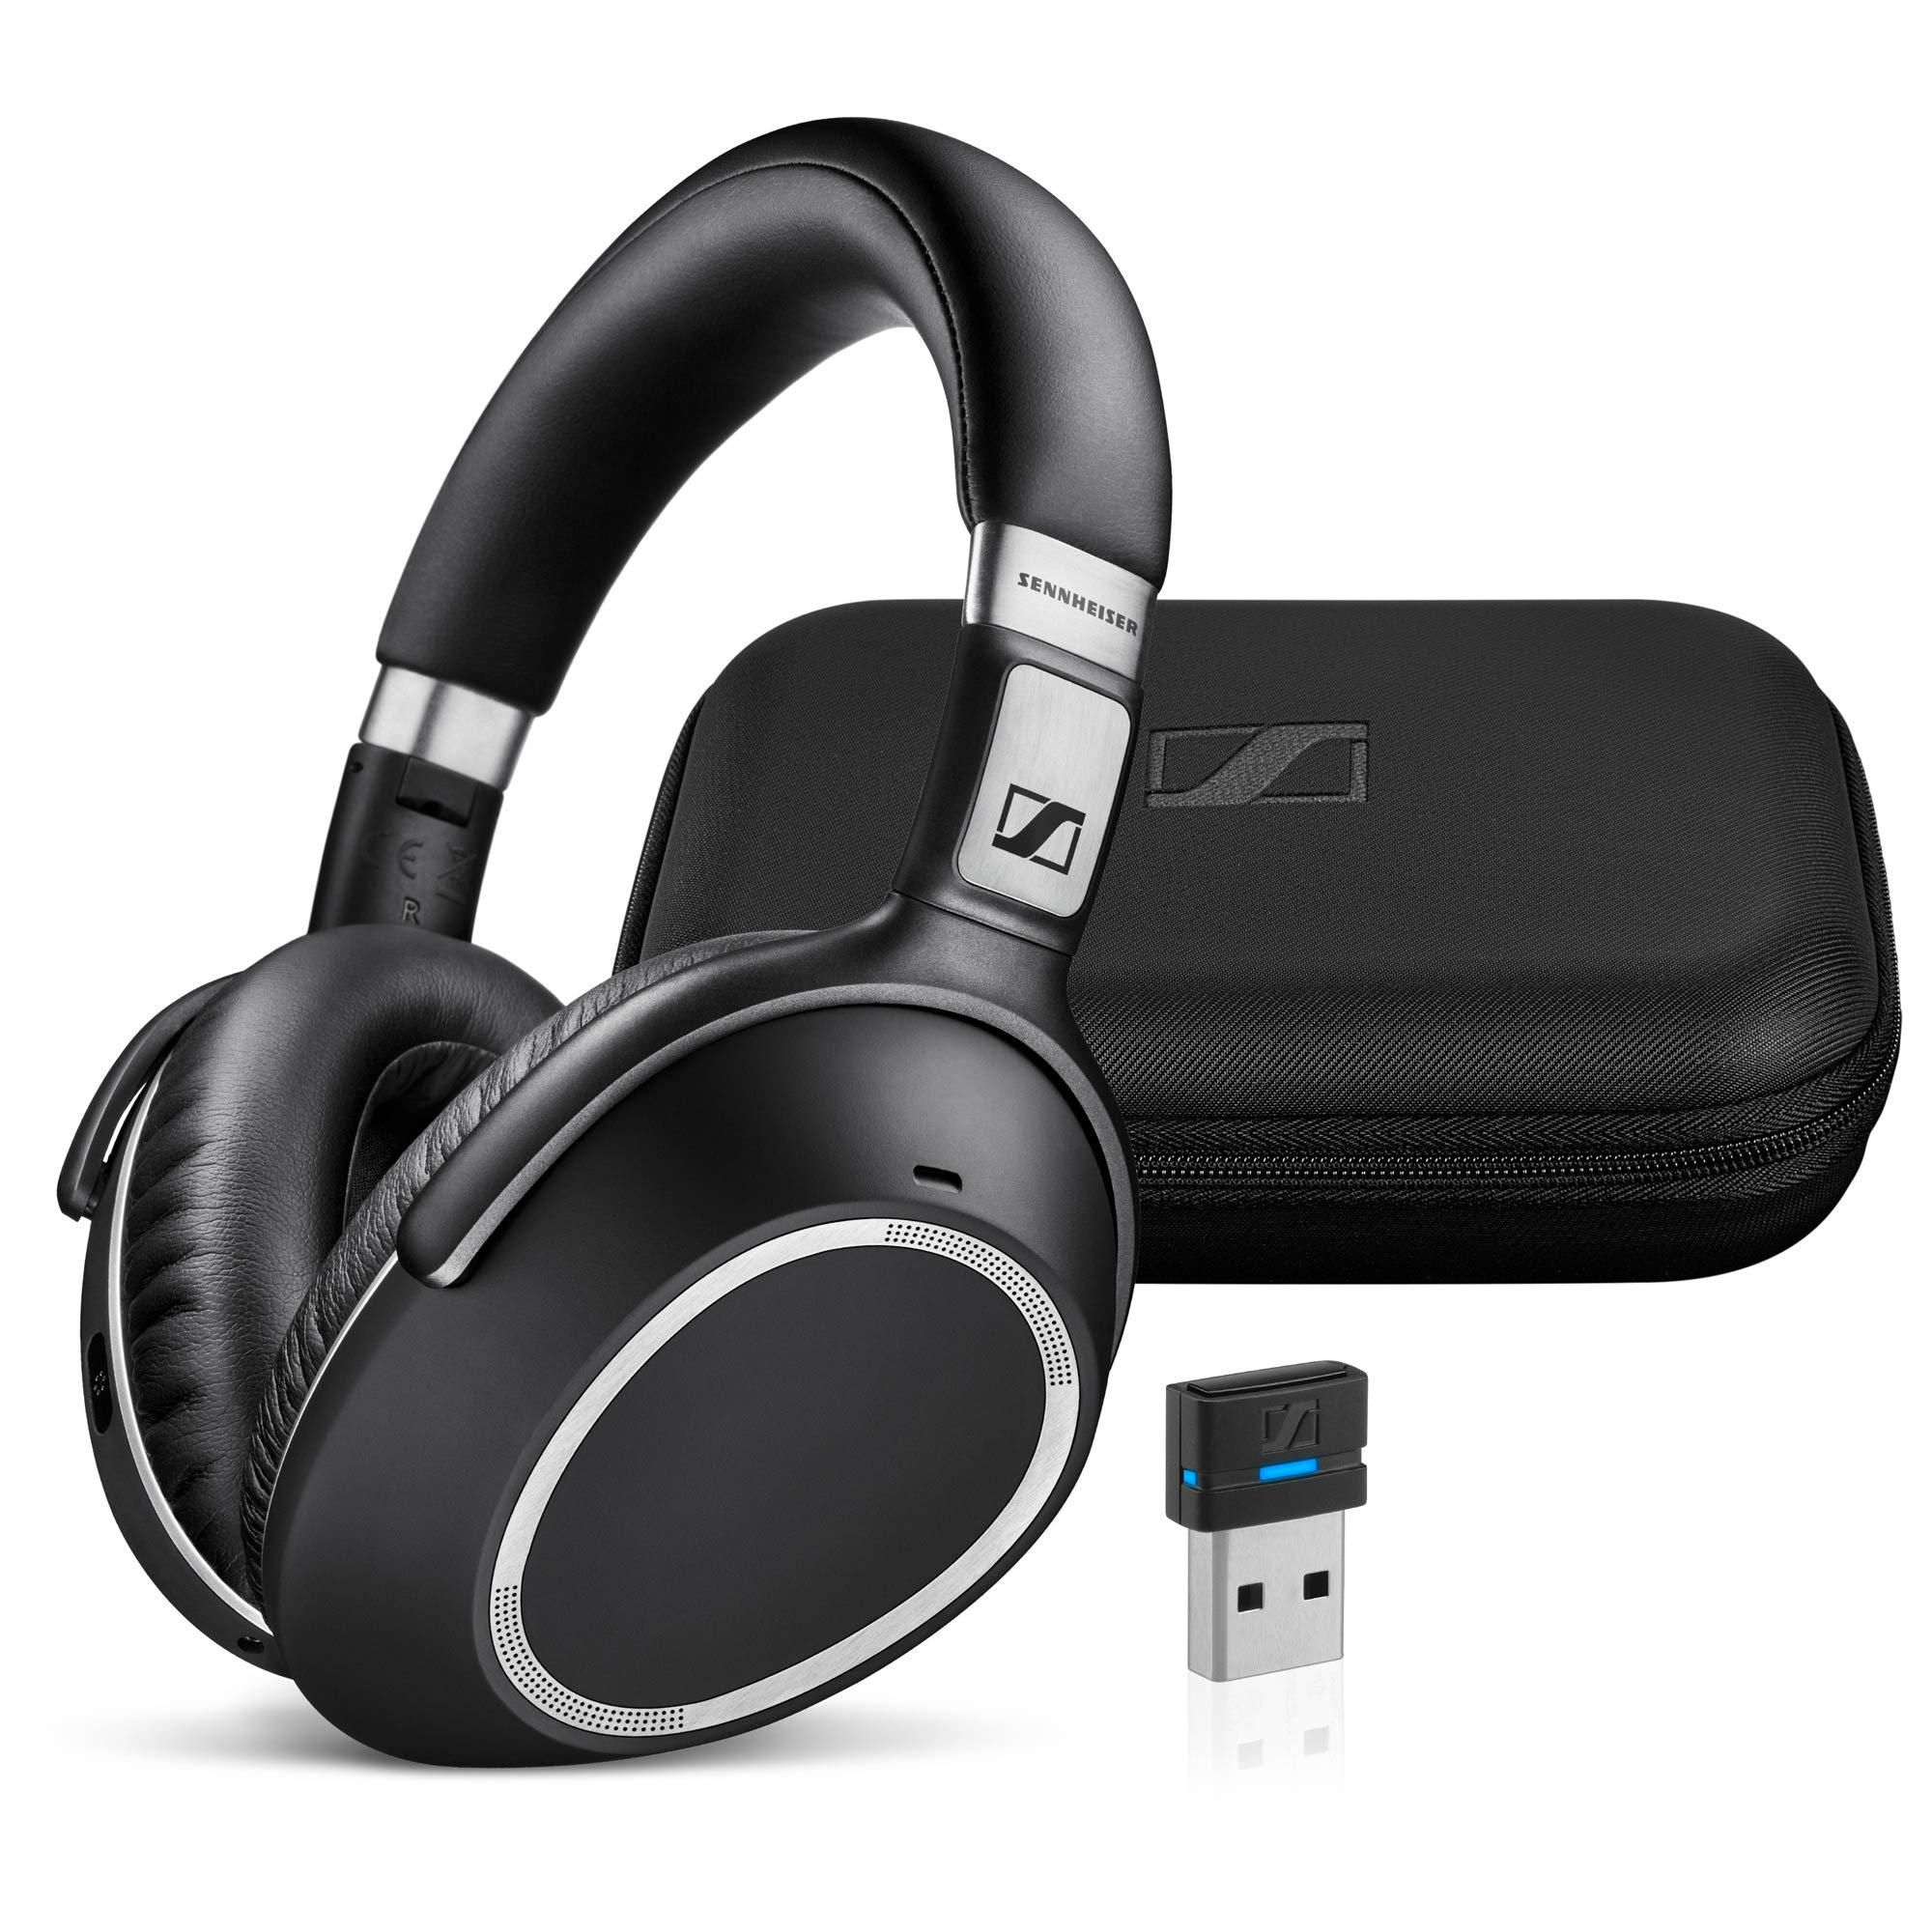 Sennheiser MB 660 UC (507092) - Dual-Connectivity, Wireless, Bluetooth, Foldable, Adaptive ANC Over-Ear Headset | For Desk/Mobile Phone & Softphone/PC Connection | UC Platform Compatibility (Black) by Sennheiser Enterprise Solution